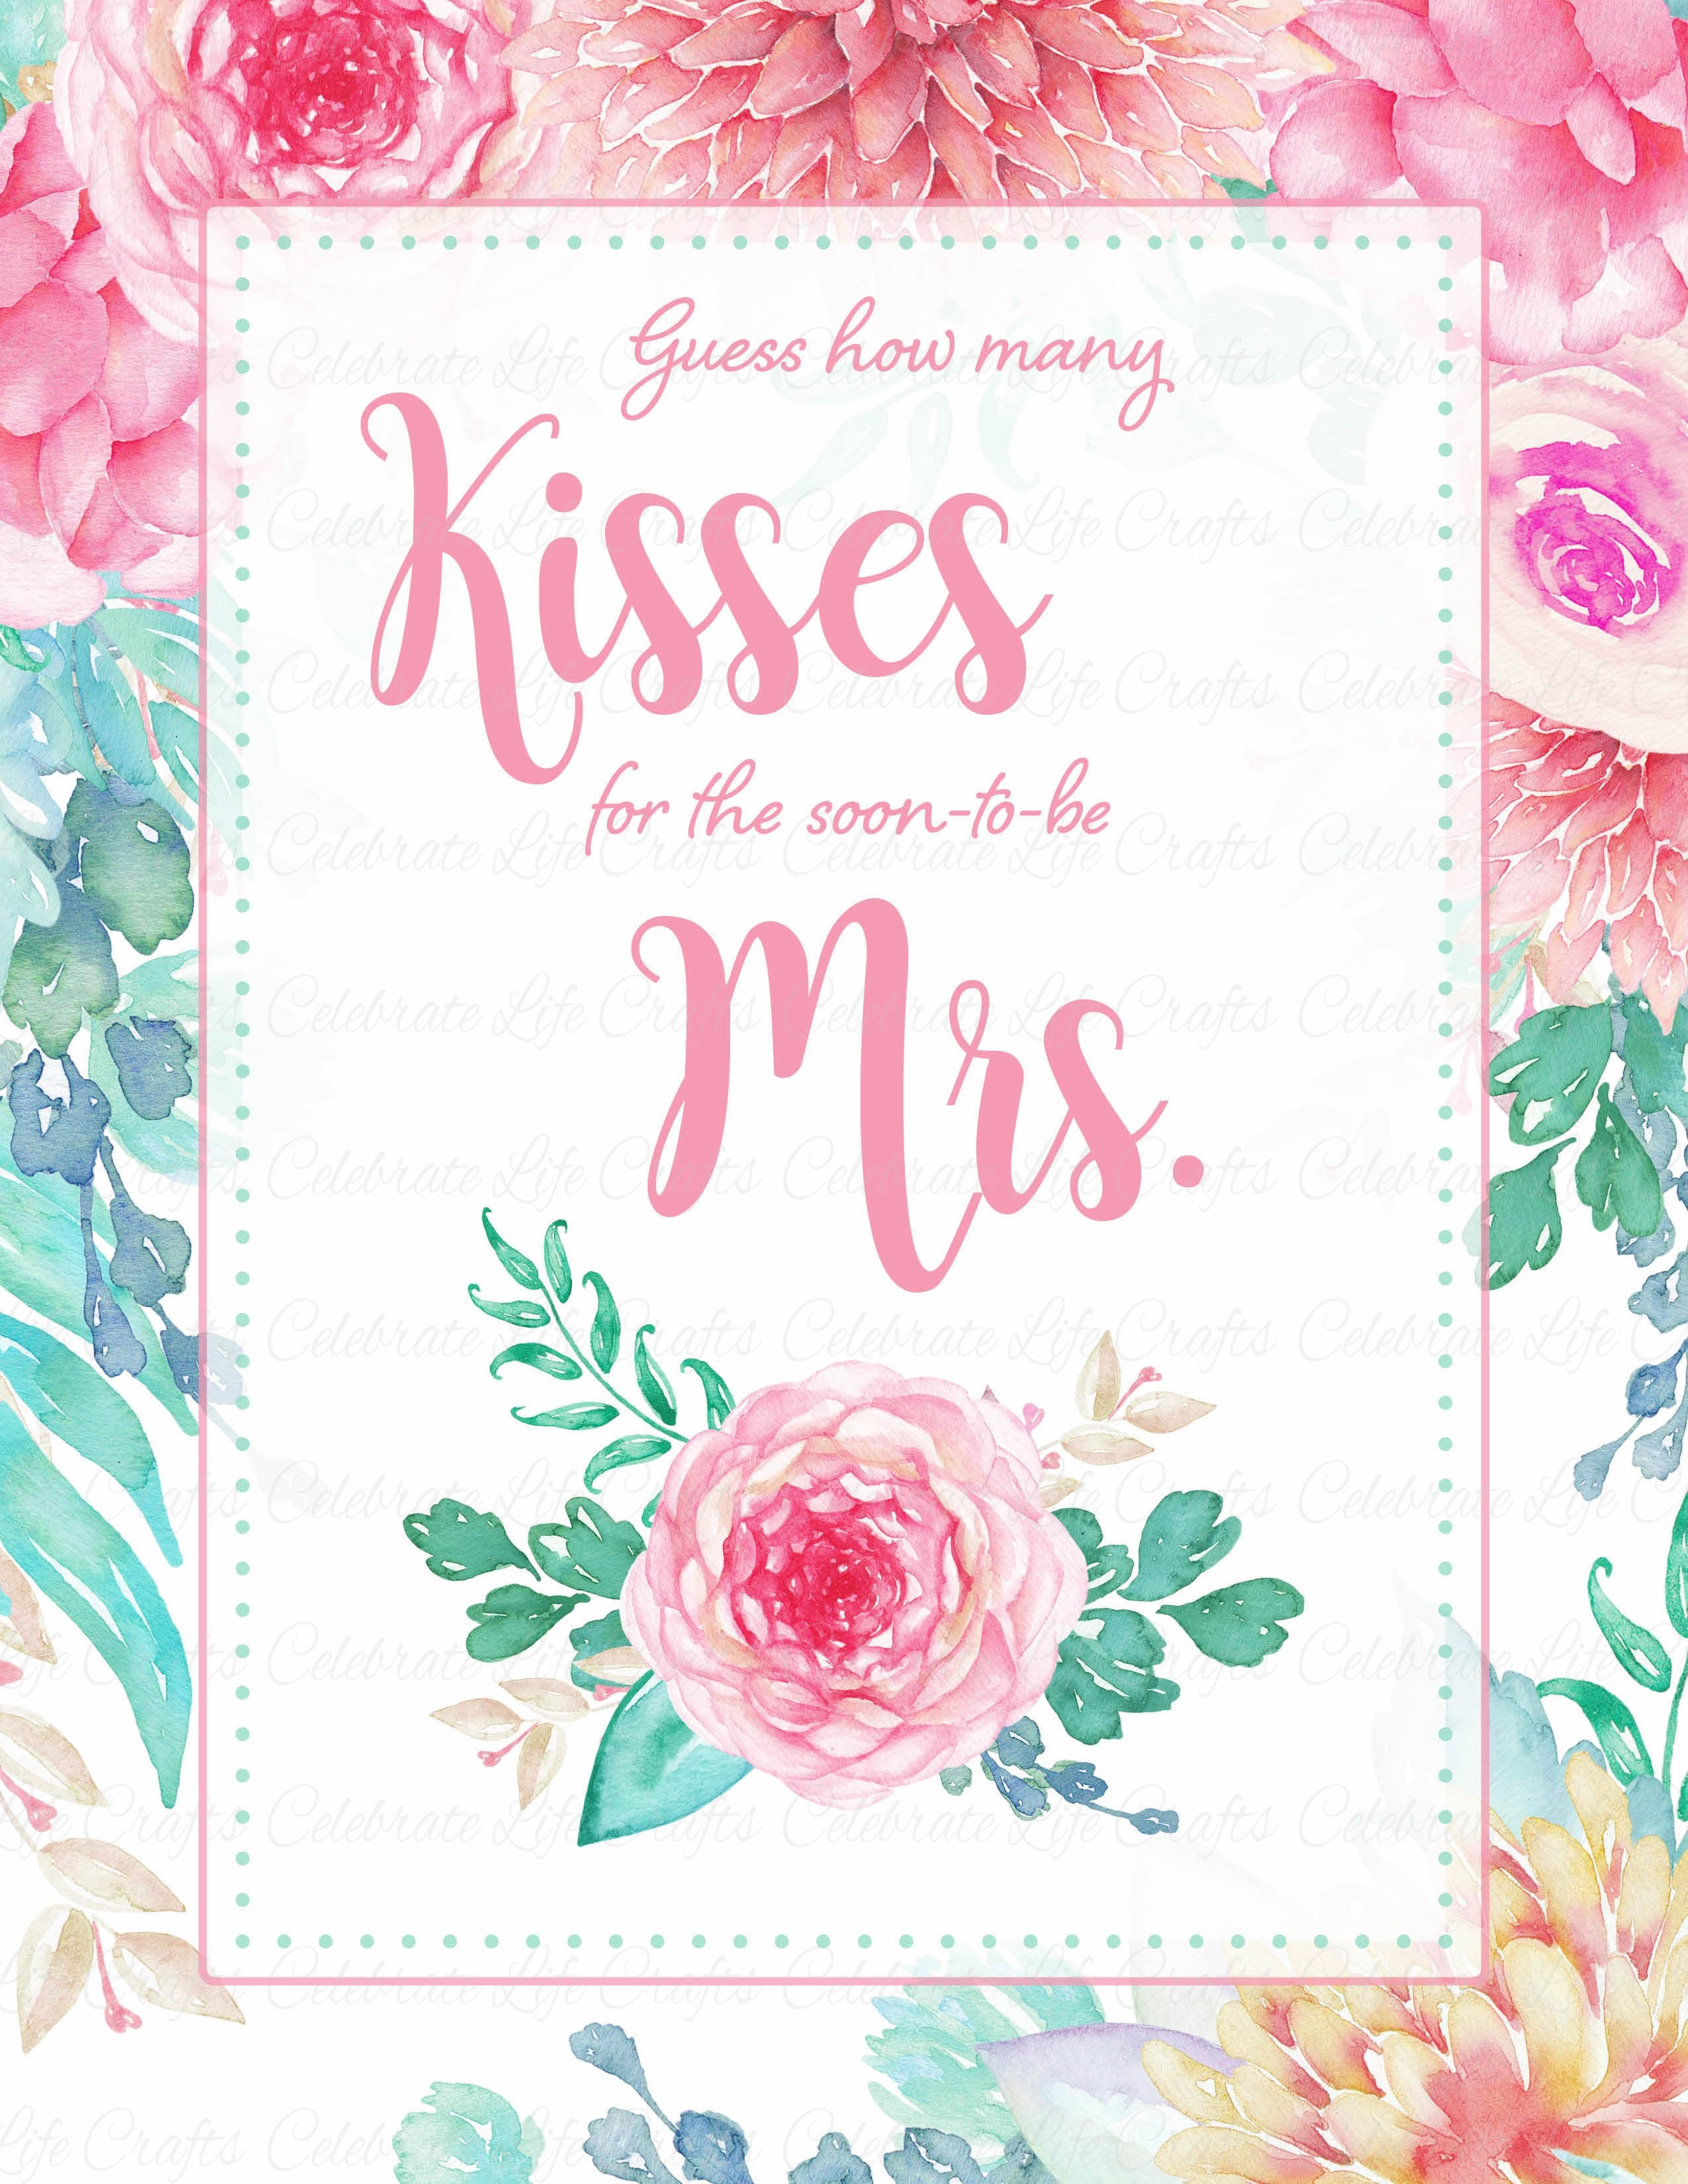 picture about Guess Who Cards Printable identify How A lot of Kisses Bridal Shower Sport Indicator - Red Floral